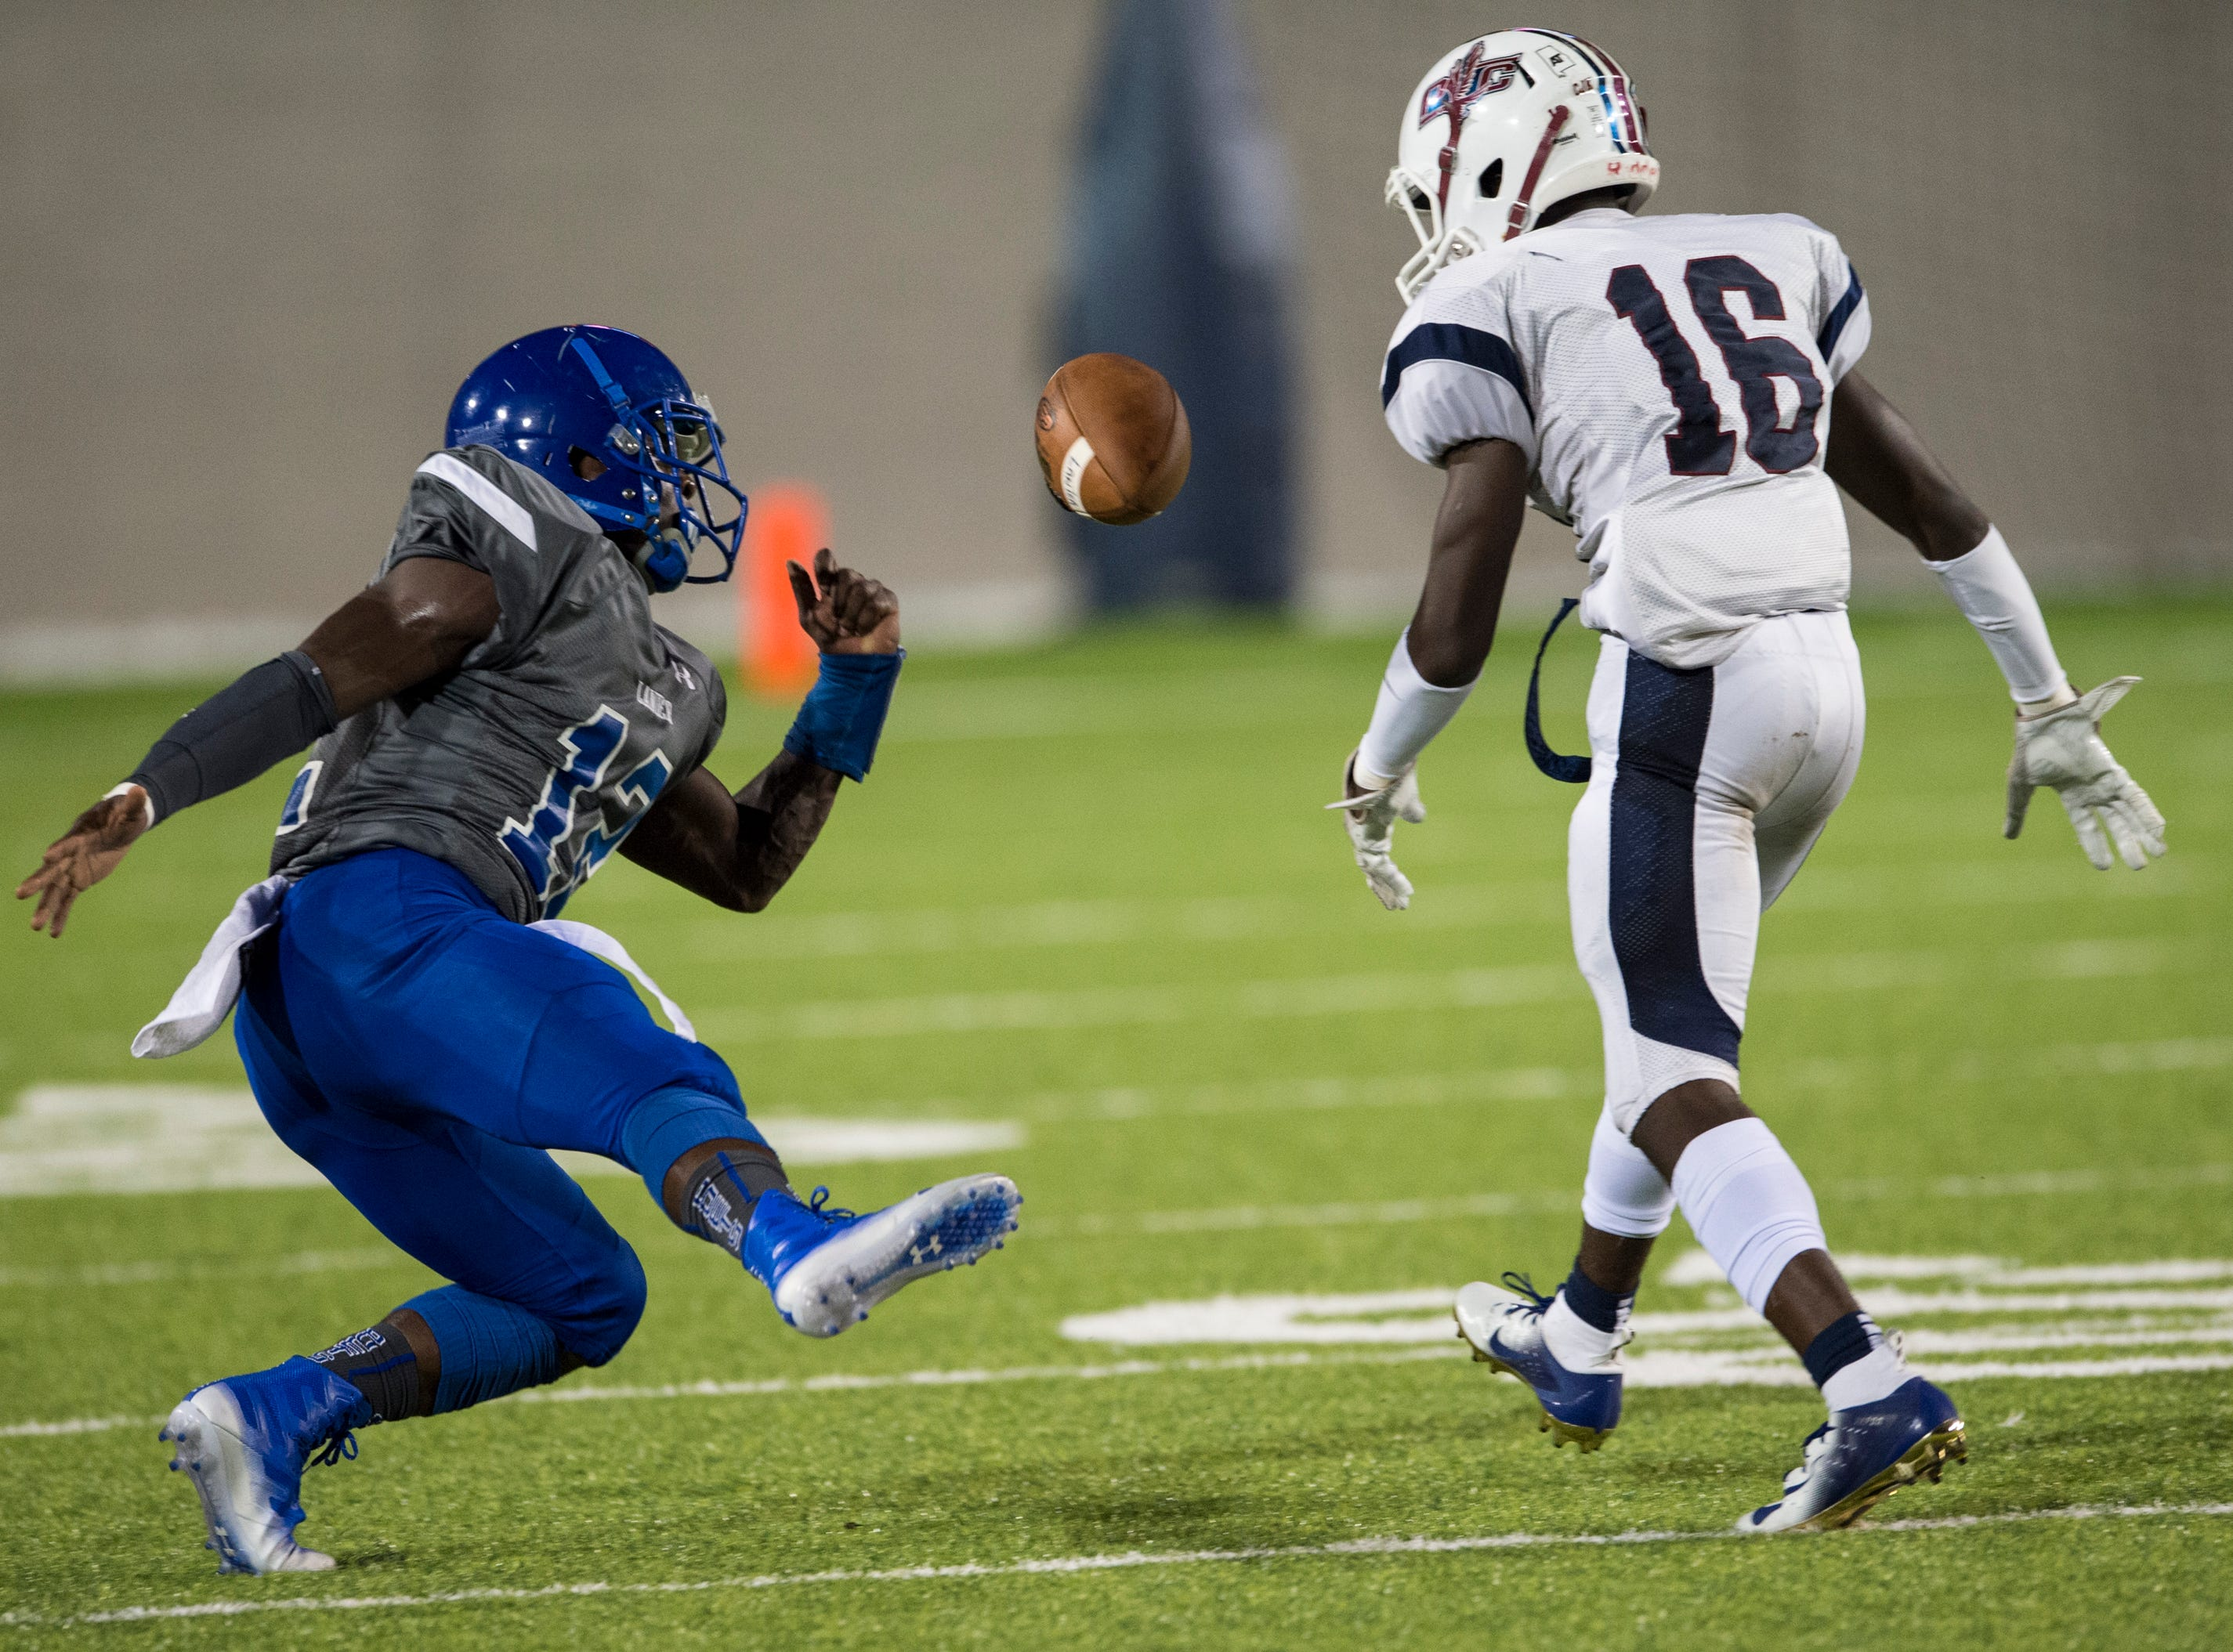 Lanier's Noah Hart (12) pulls down a tipped pass as he falls back defended by Park Crossing's Jaylen Carthen (16) at Cramton Bowl in Montgomery, Ala., on Friday, Sept. 21, 2018. Lanier leads Park Crossing 14-7 at halftime.